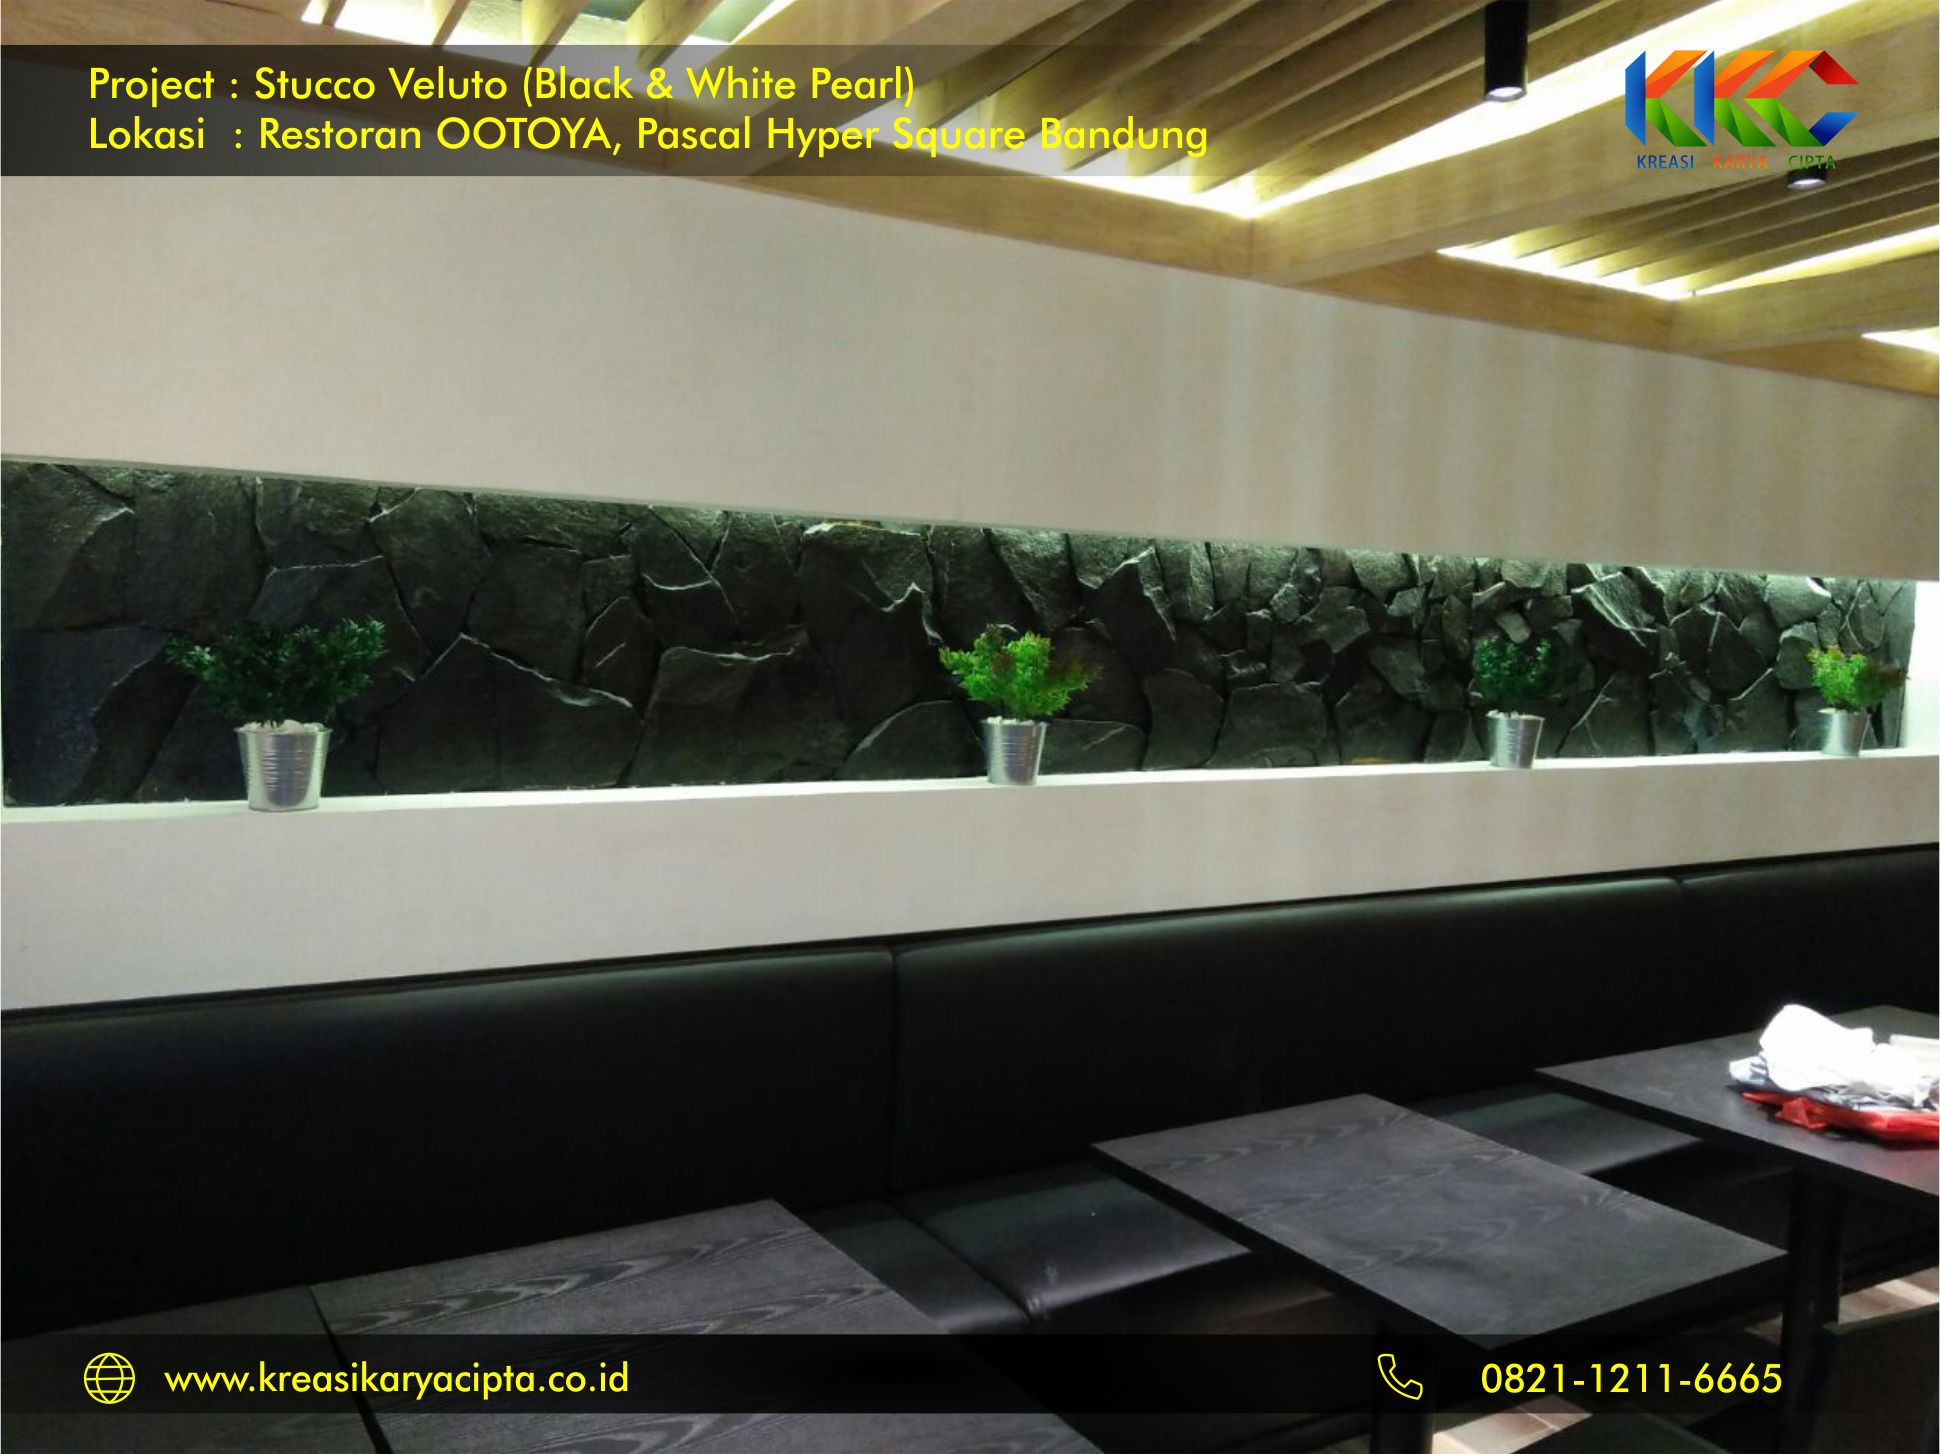 Project Cat Stucco Veluto White and Black Pearl Restoran OOTOYA Pascal Hyper Square Bandung